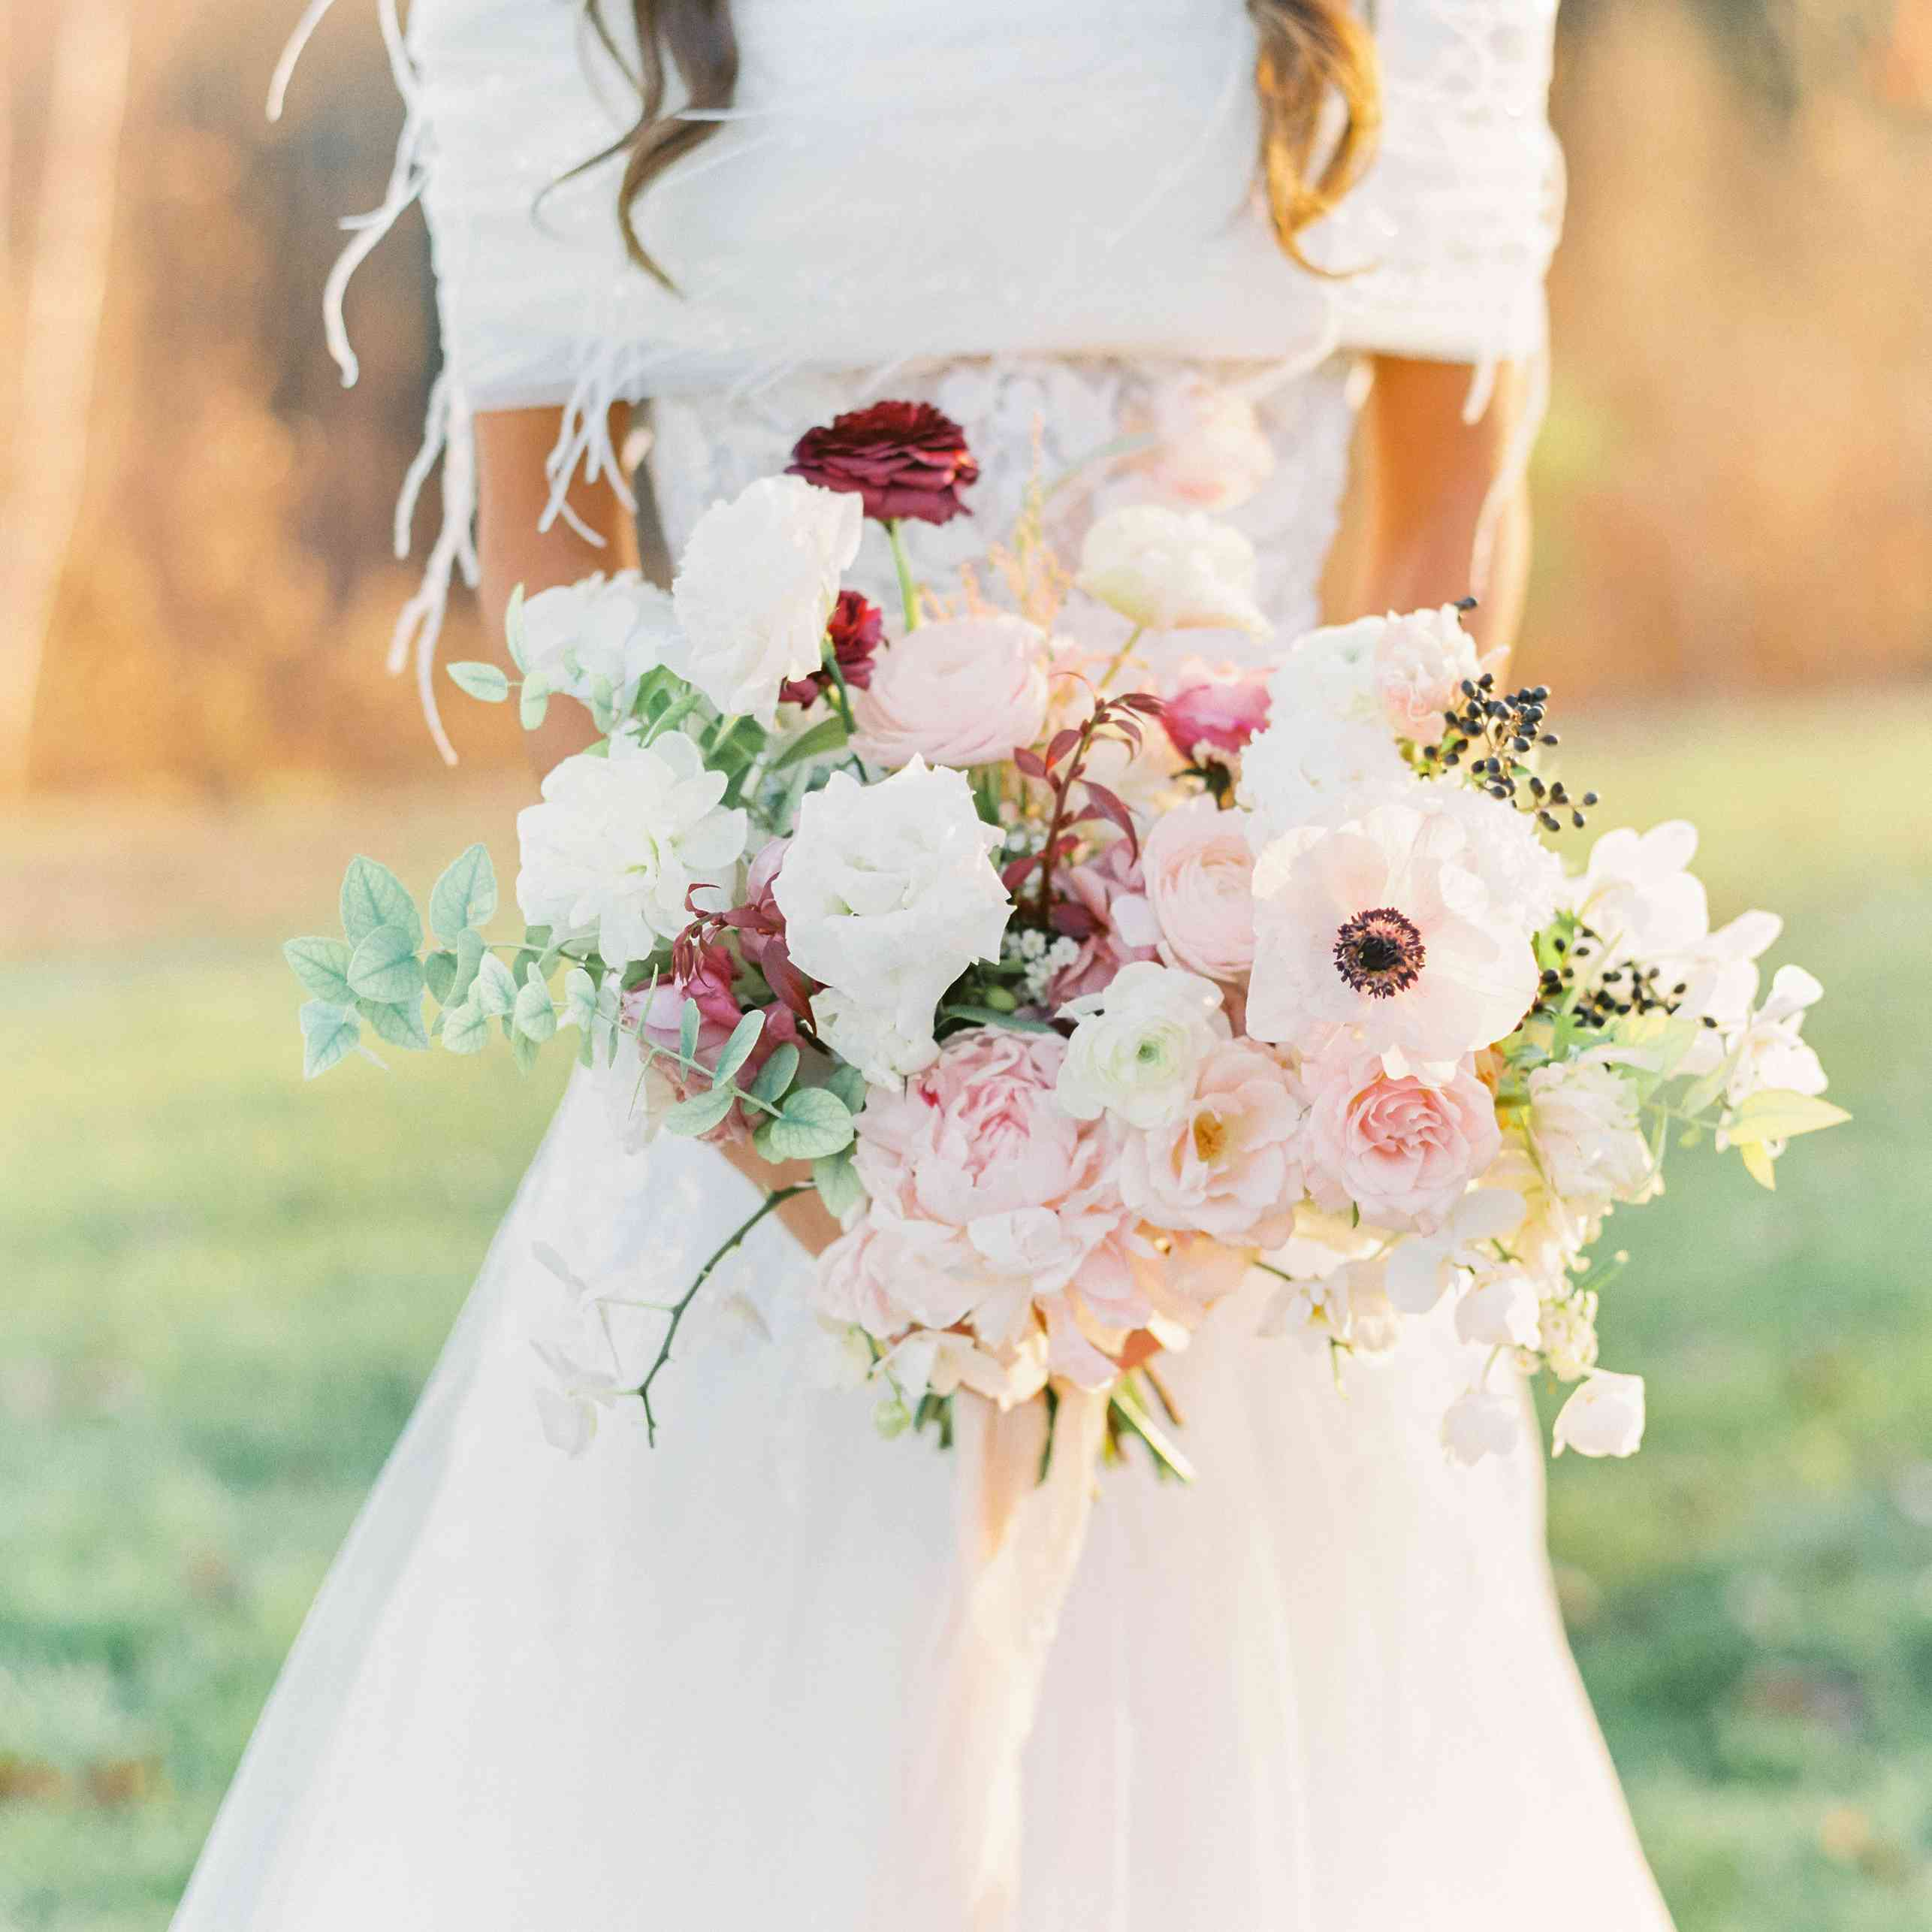 Bridal bouquet consisting of white and blush roses